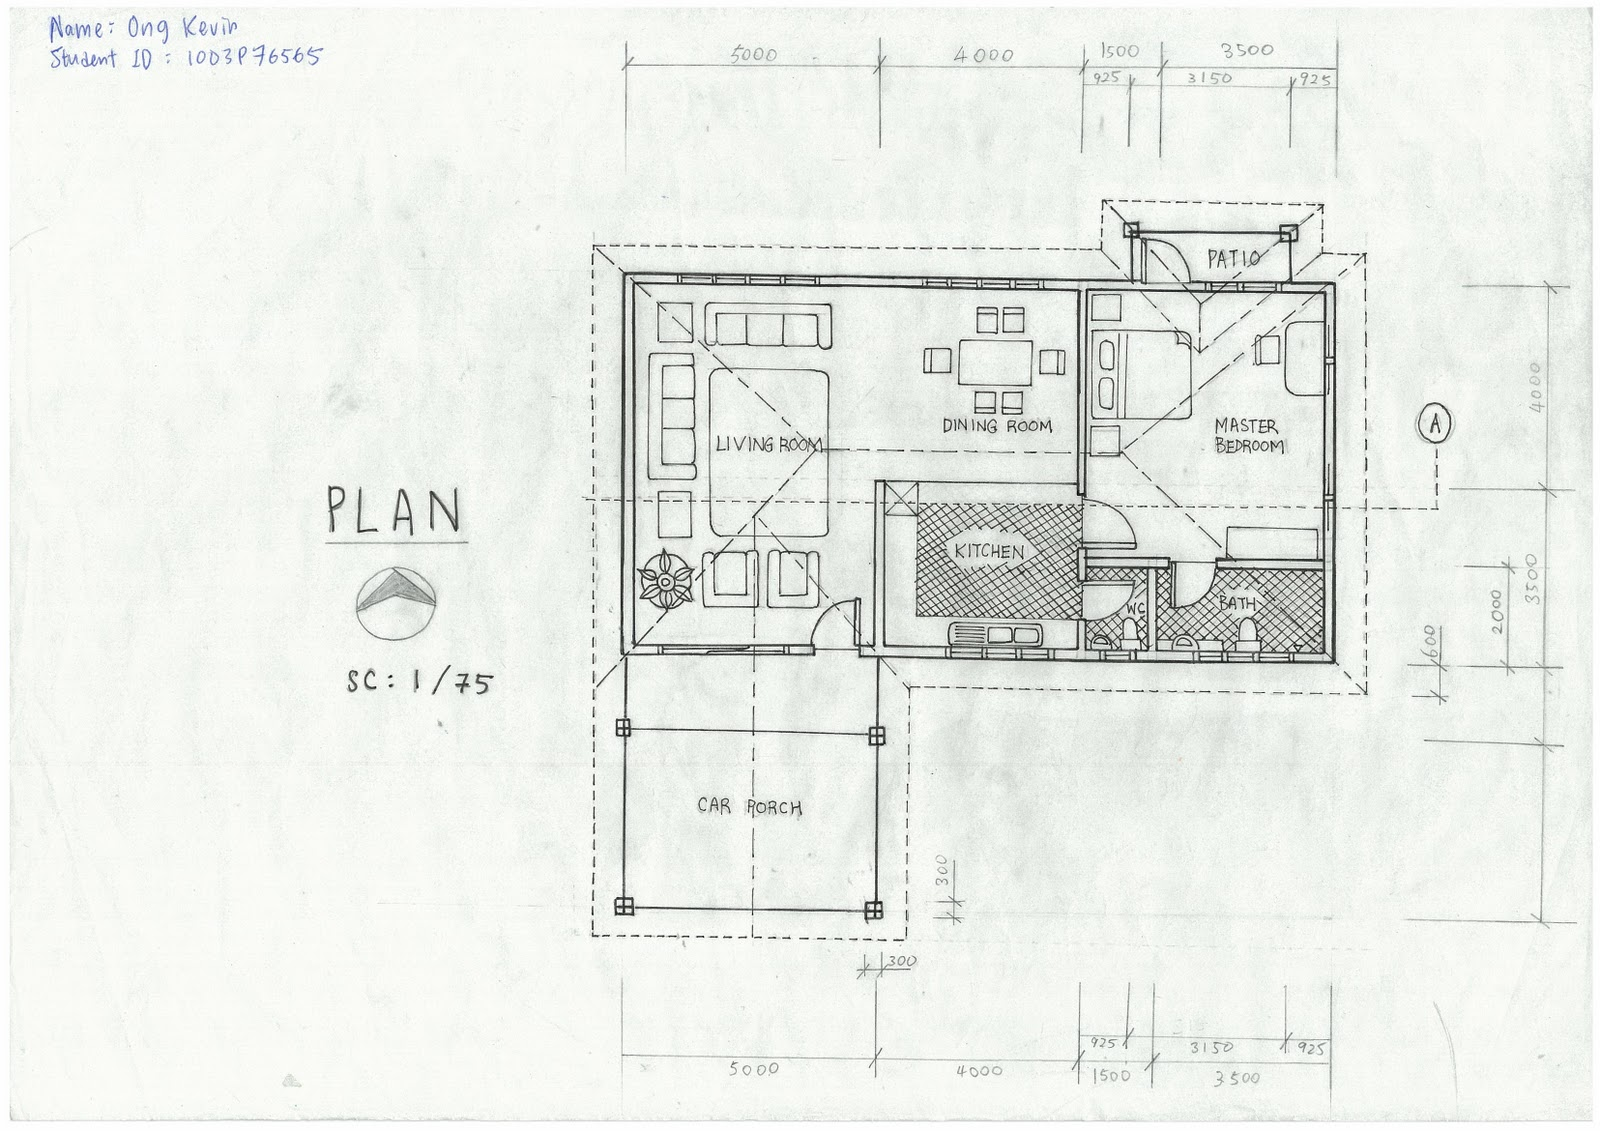 Elevation Plan Scale : Scale drawing plan elevation i m ong kevin